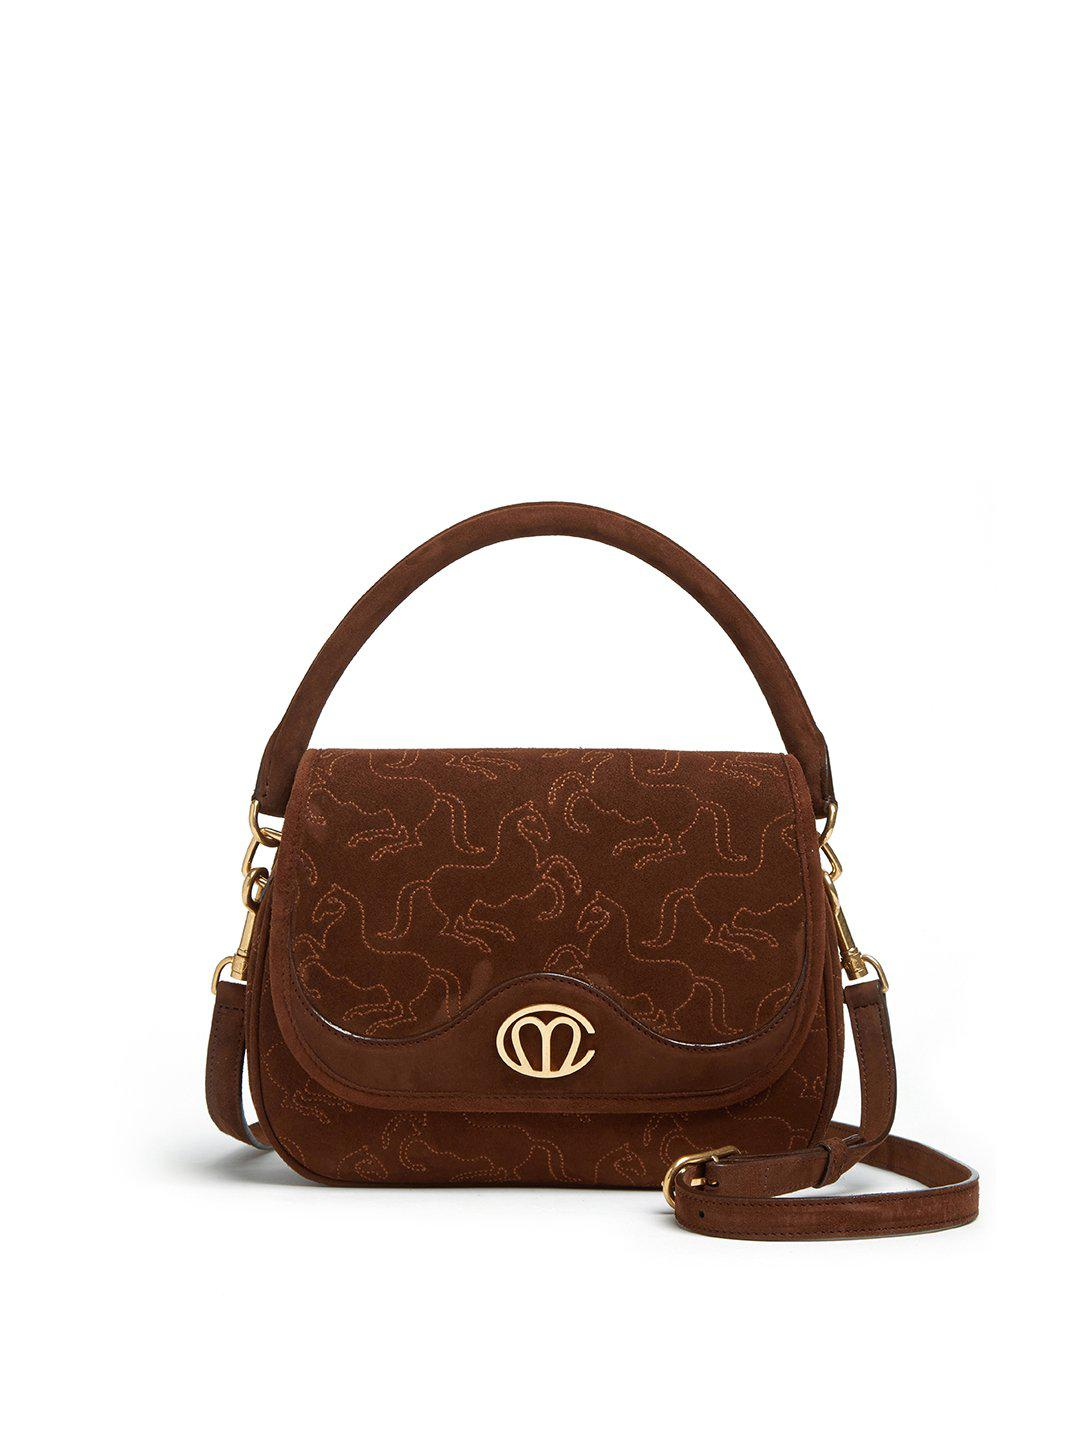 Christy Small Embroidered Suede Top Handle Bag